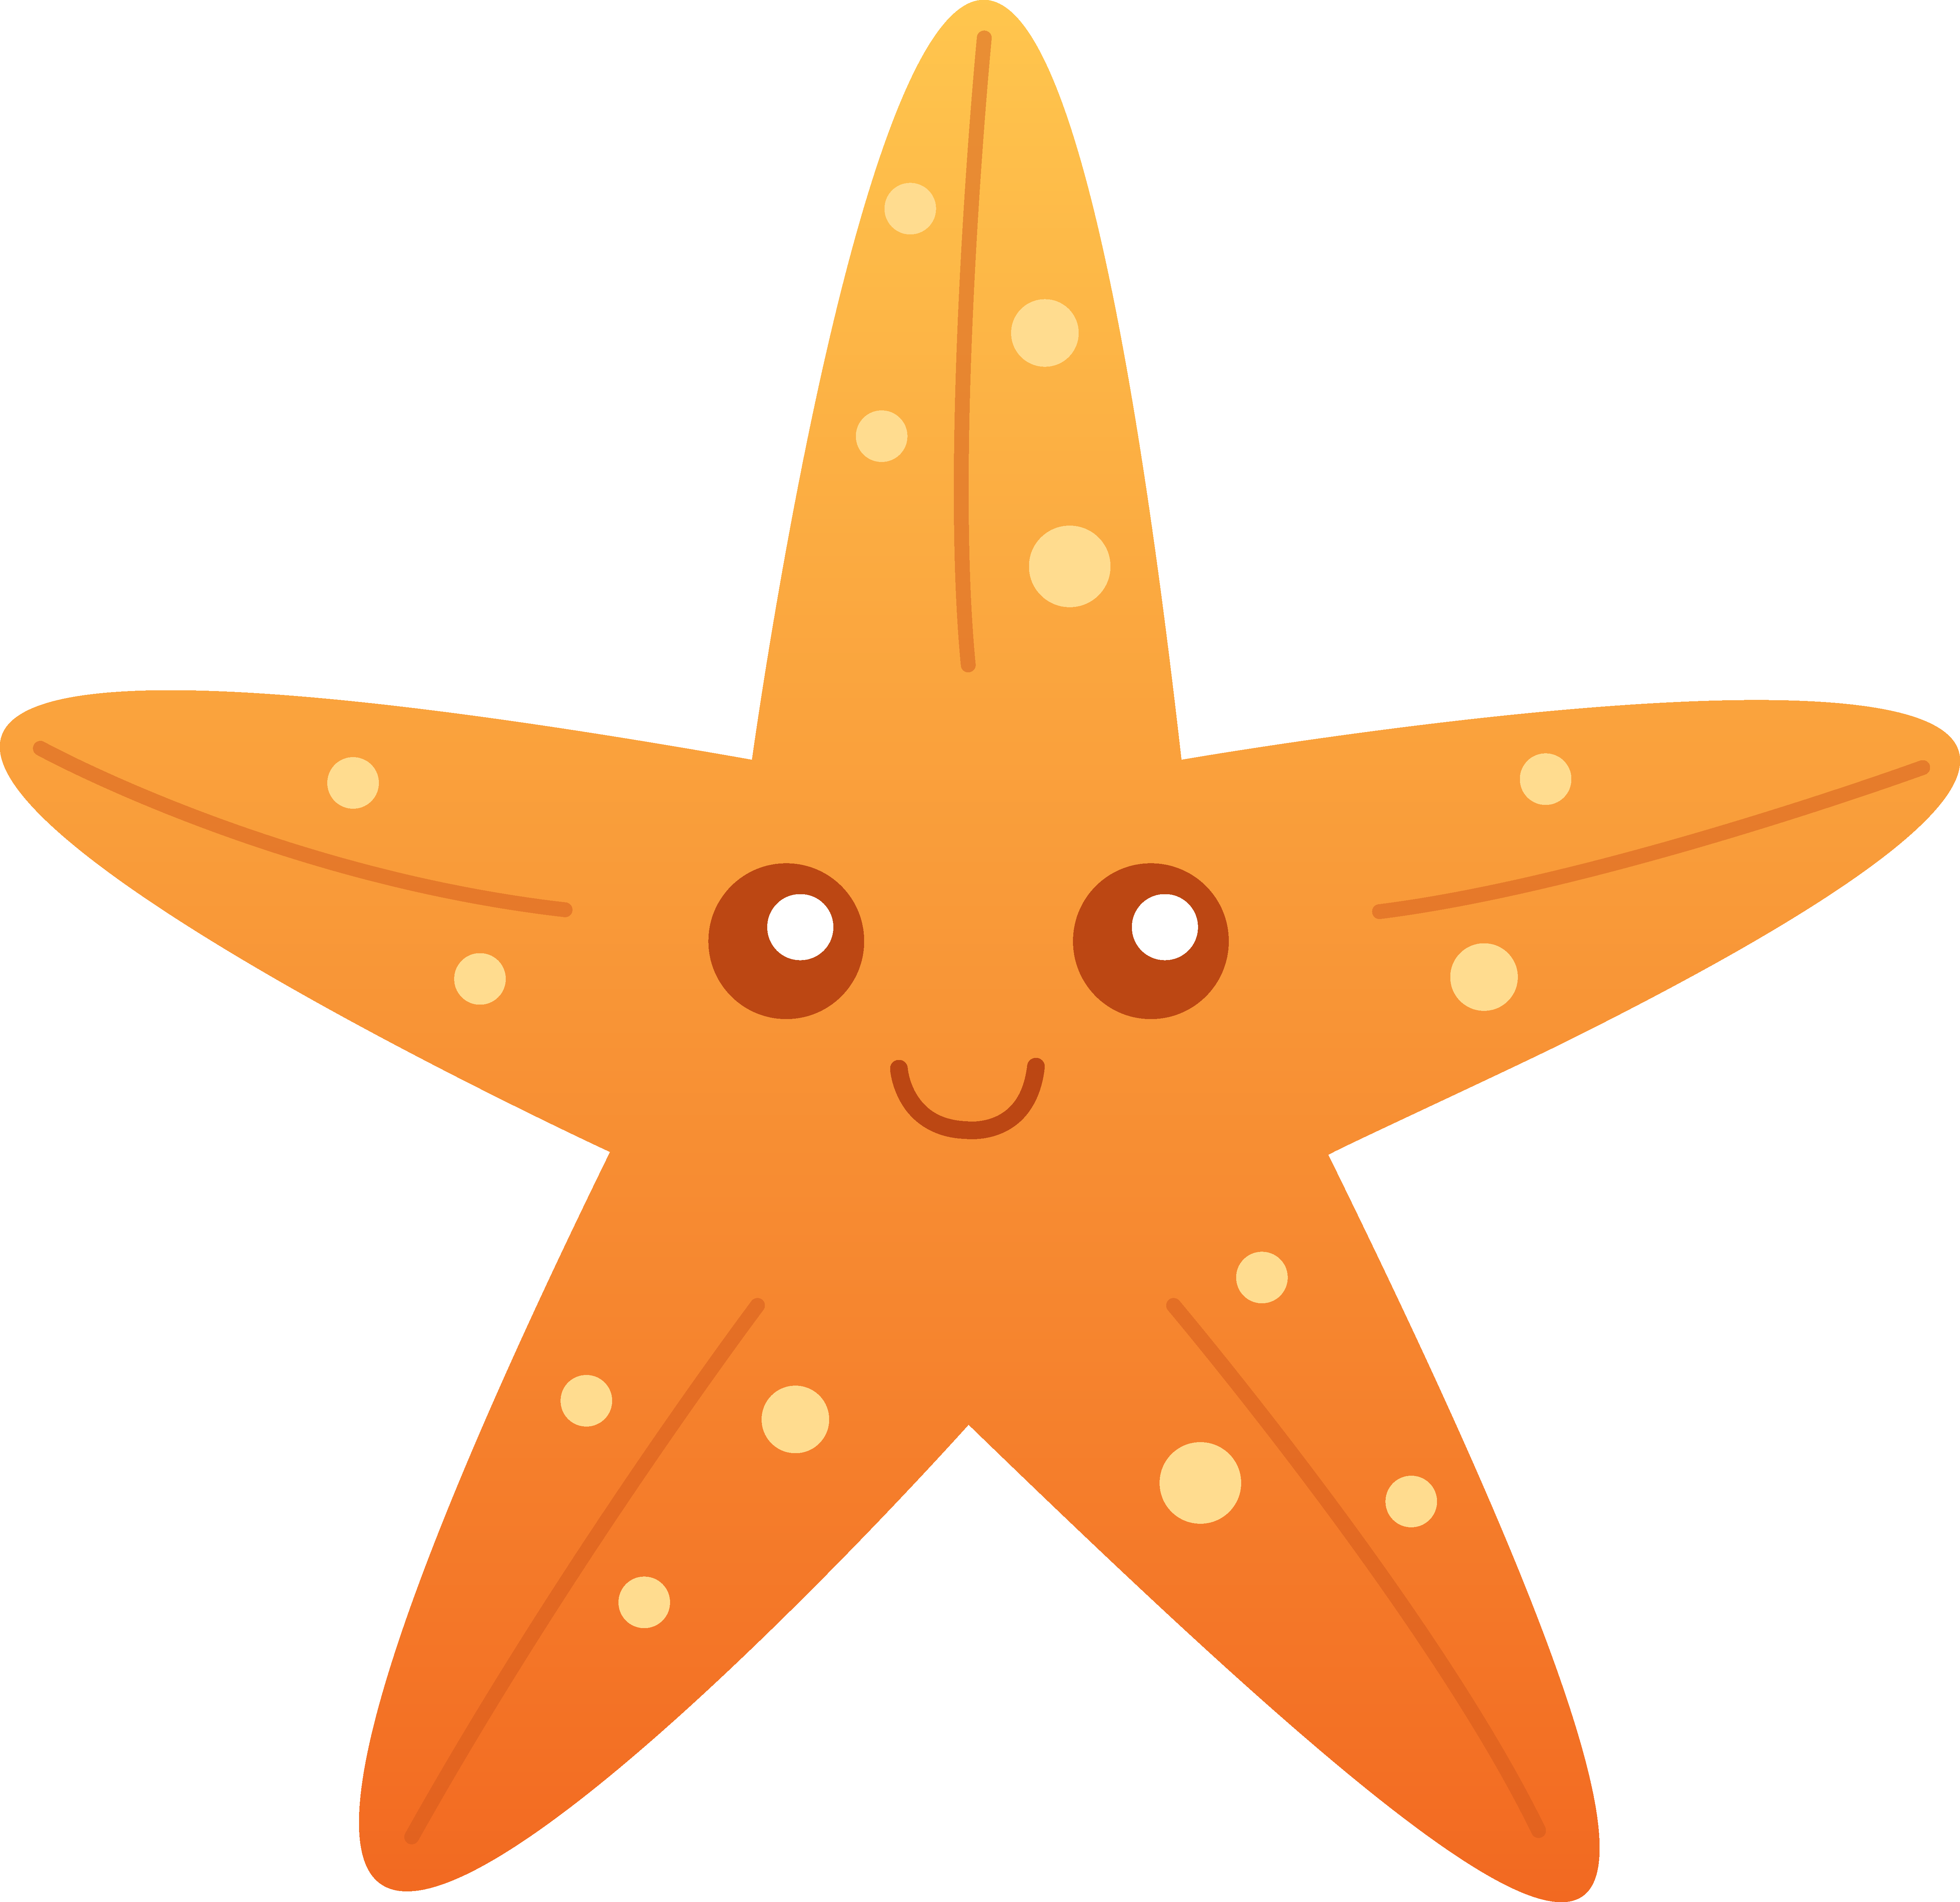 graphic freeuse download Starfish clipart. Cute panda free images.